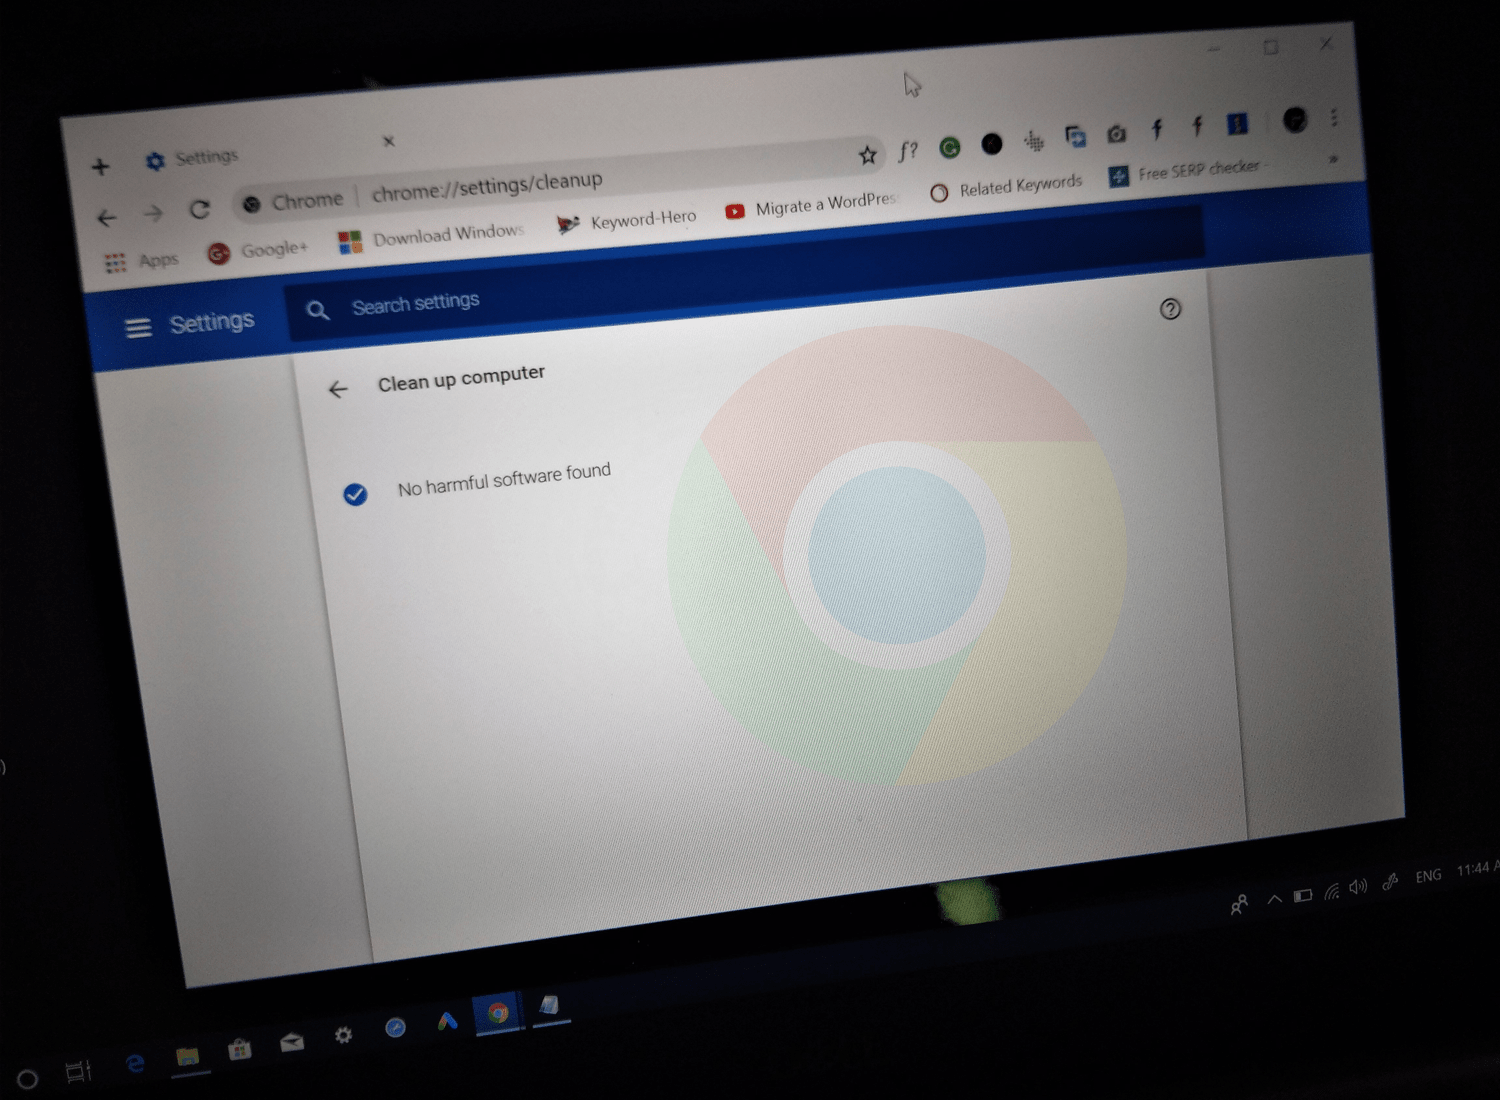 How to Run Google Chrome Cleanup Tool